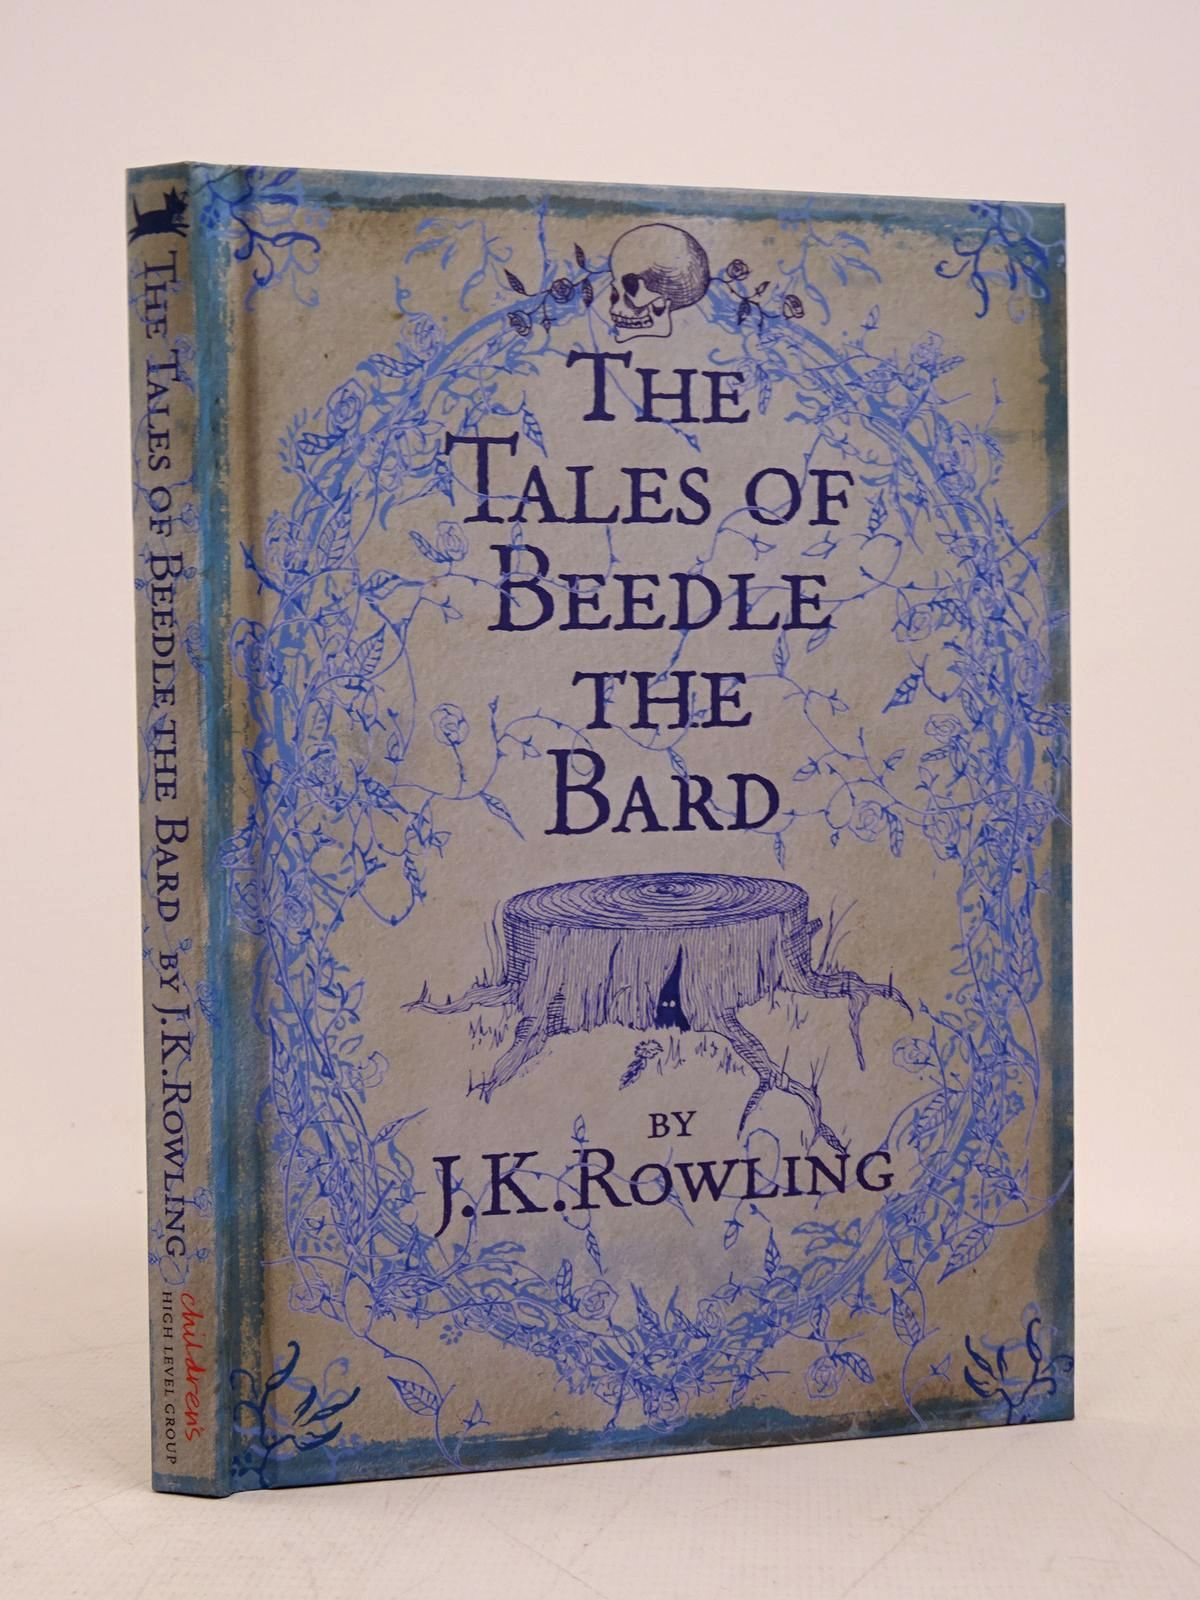 Photo of THE TALES OF BEEDLE THE BARD written by Rowling, J.K. illustrated by Rowling, J.K. published by The Children's High Level Group, Bloomsbury (STOCK CODE: 1817960)  for sale by Stella & Rose's Books